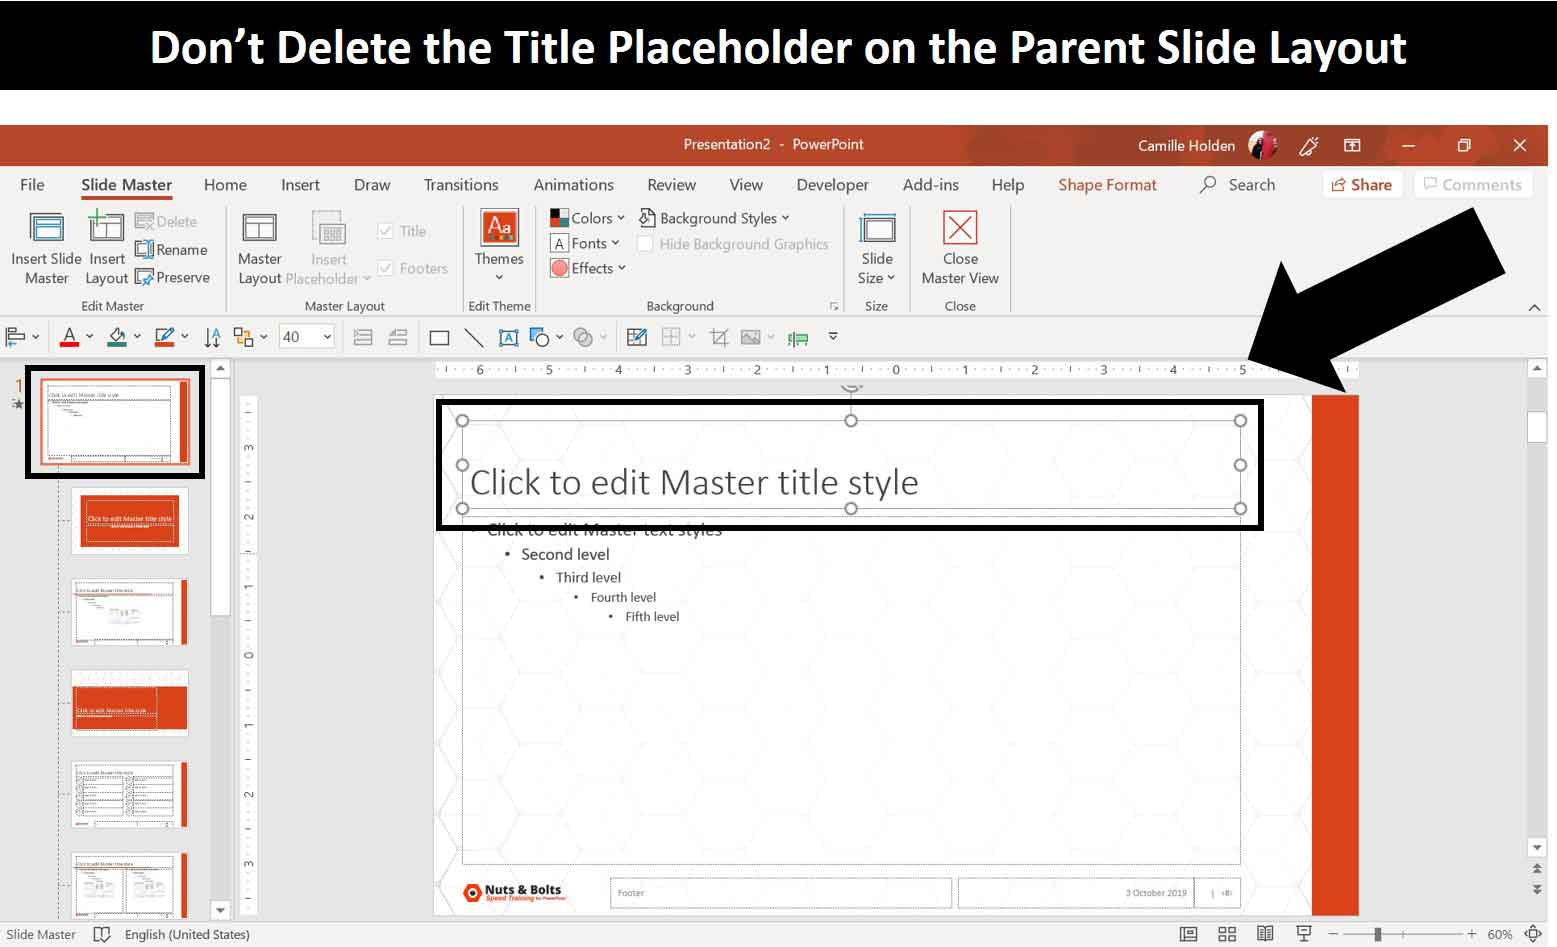 Don't delete the title placeholder on your slide master for your PowerPoint templates because it will break your slide layouts